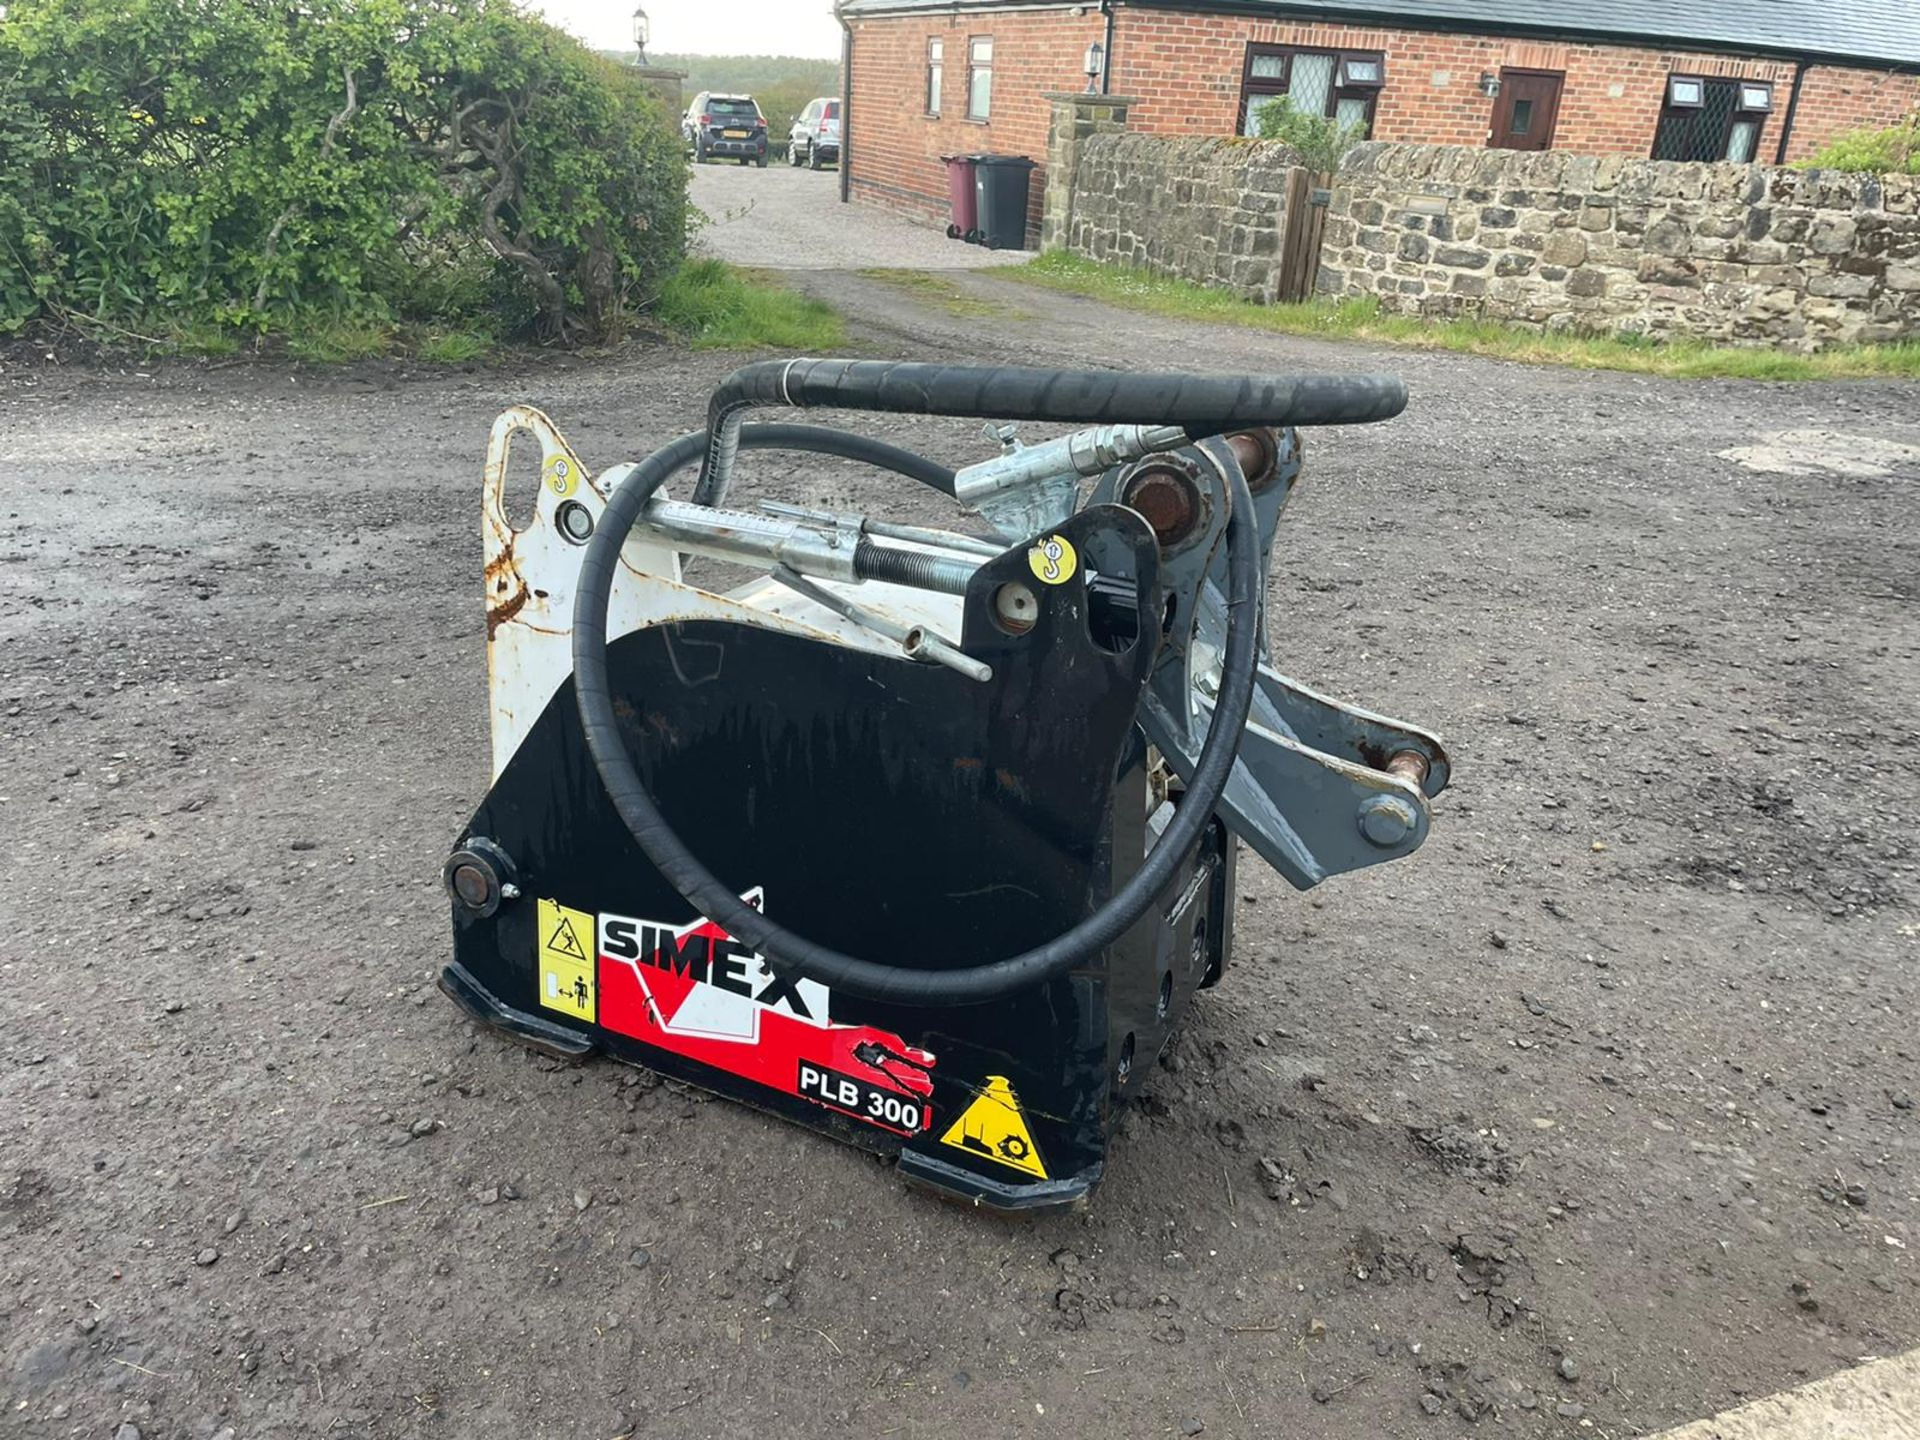 2011 SIMEX PLB 300 ROAD PLANER,HYDRAULIC DRIVEN, NOT DONE MUCH WORK, SUITABLE FOR EXCAVATOR PLUS VAT